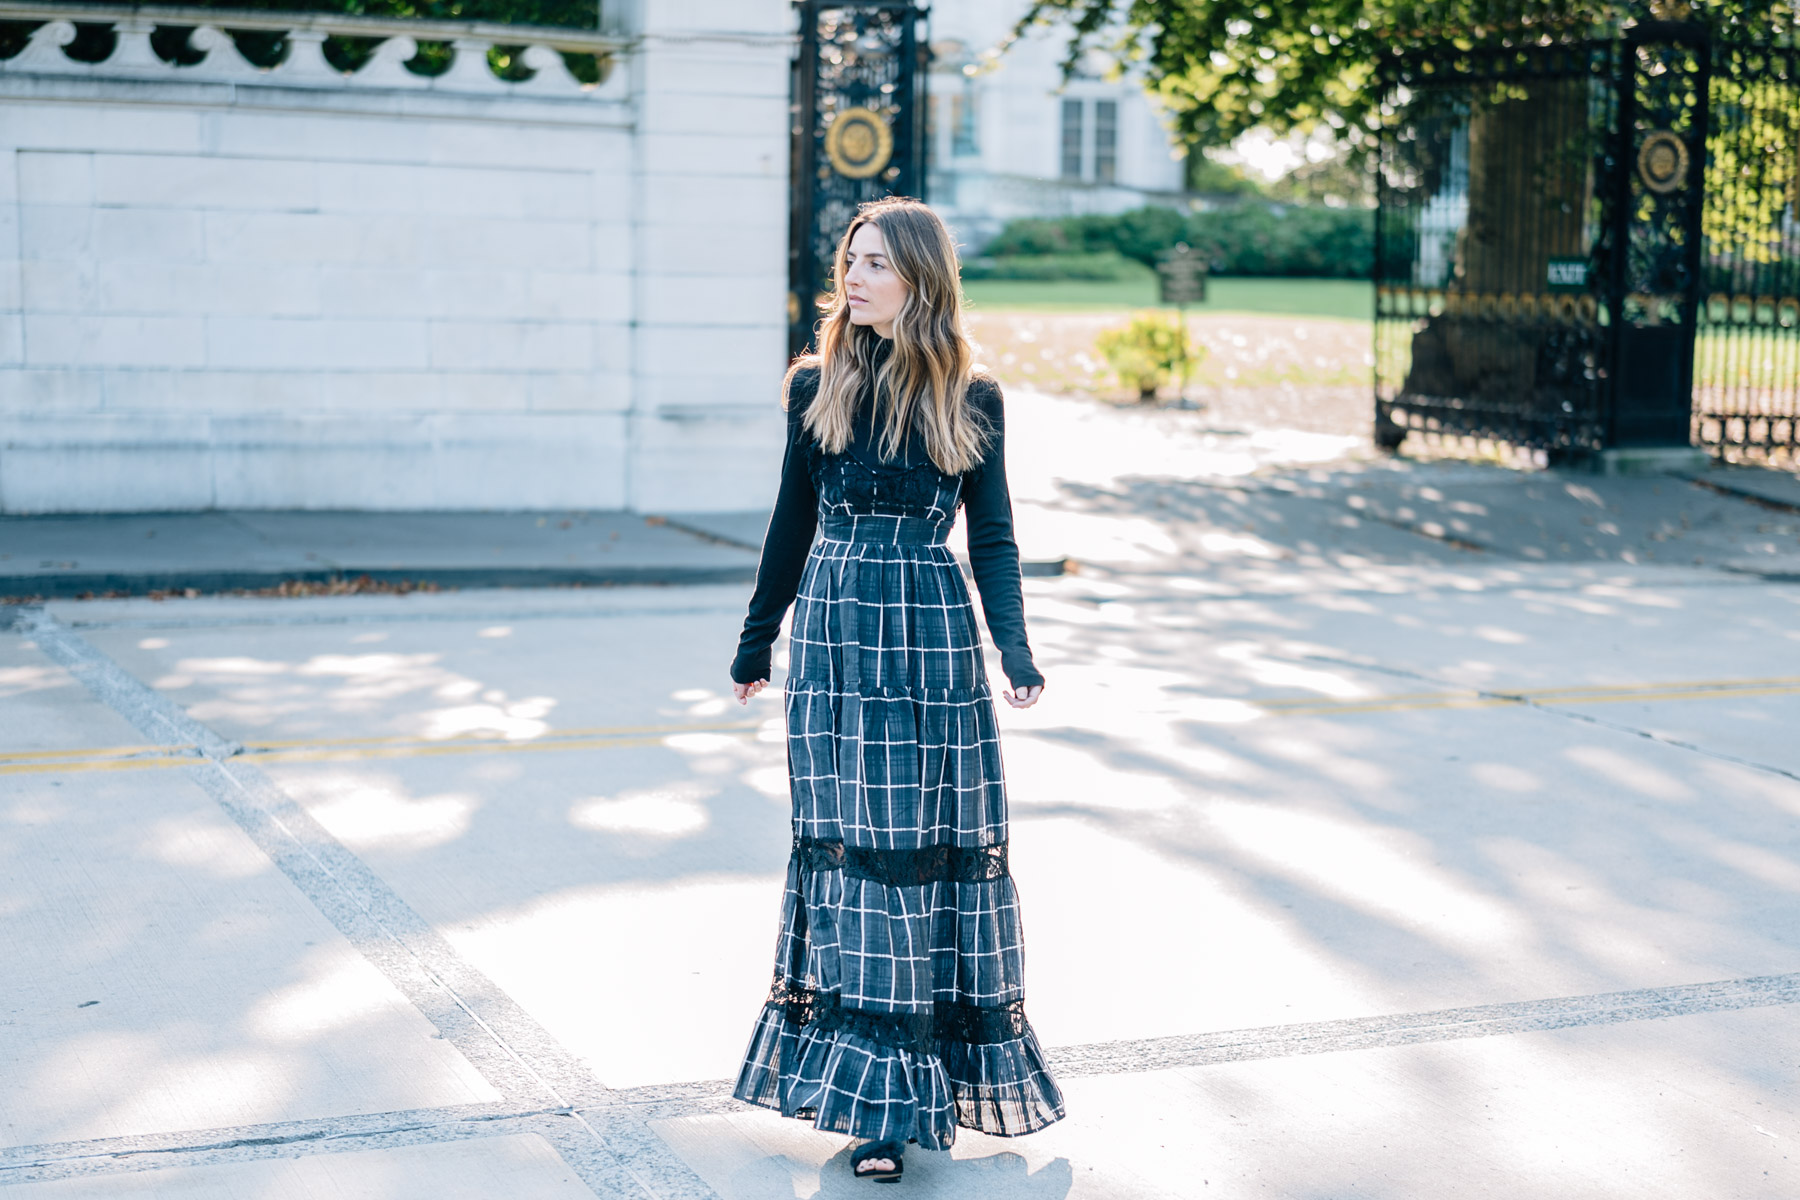 Jess Ann Kirby's fall wedding style in the vetiver plaid maxi dress